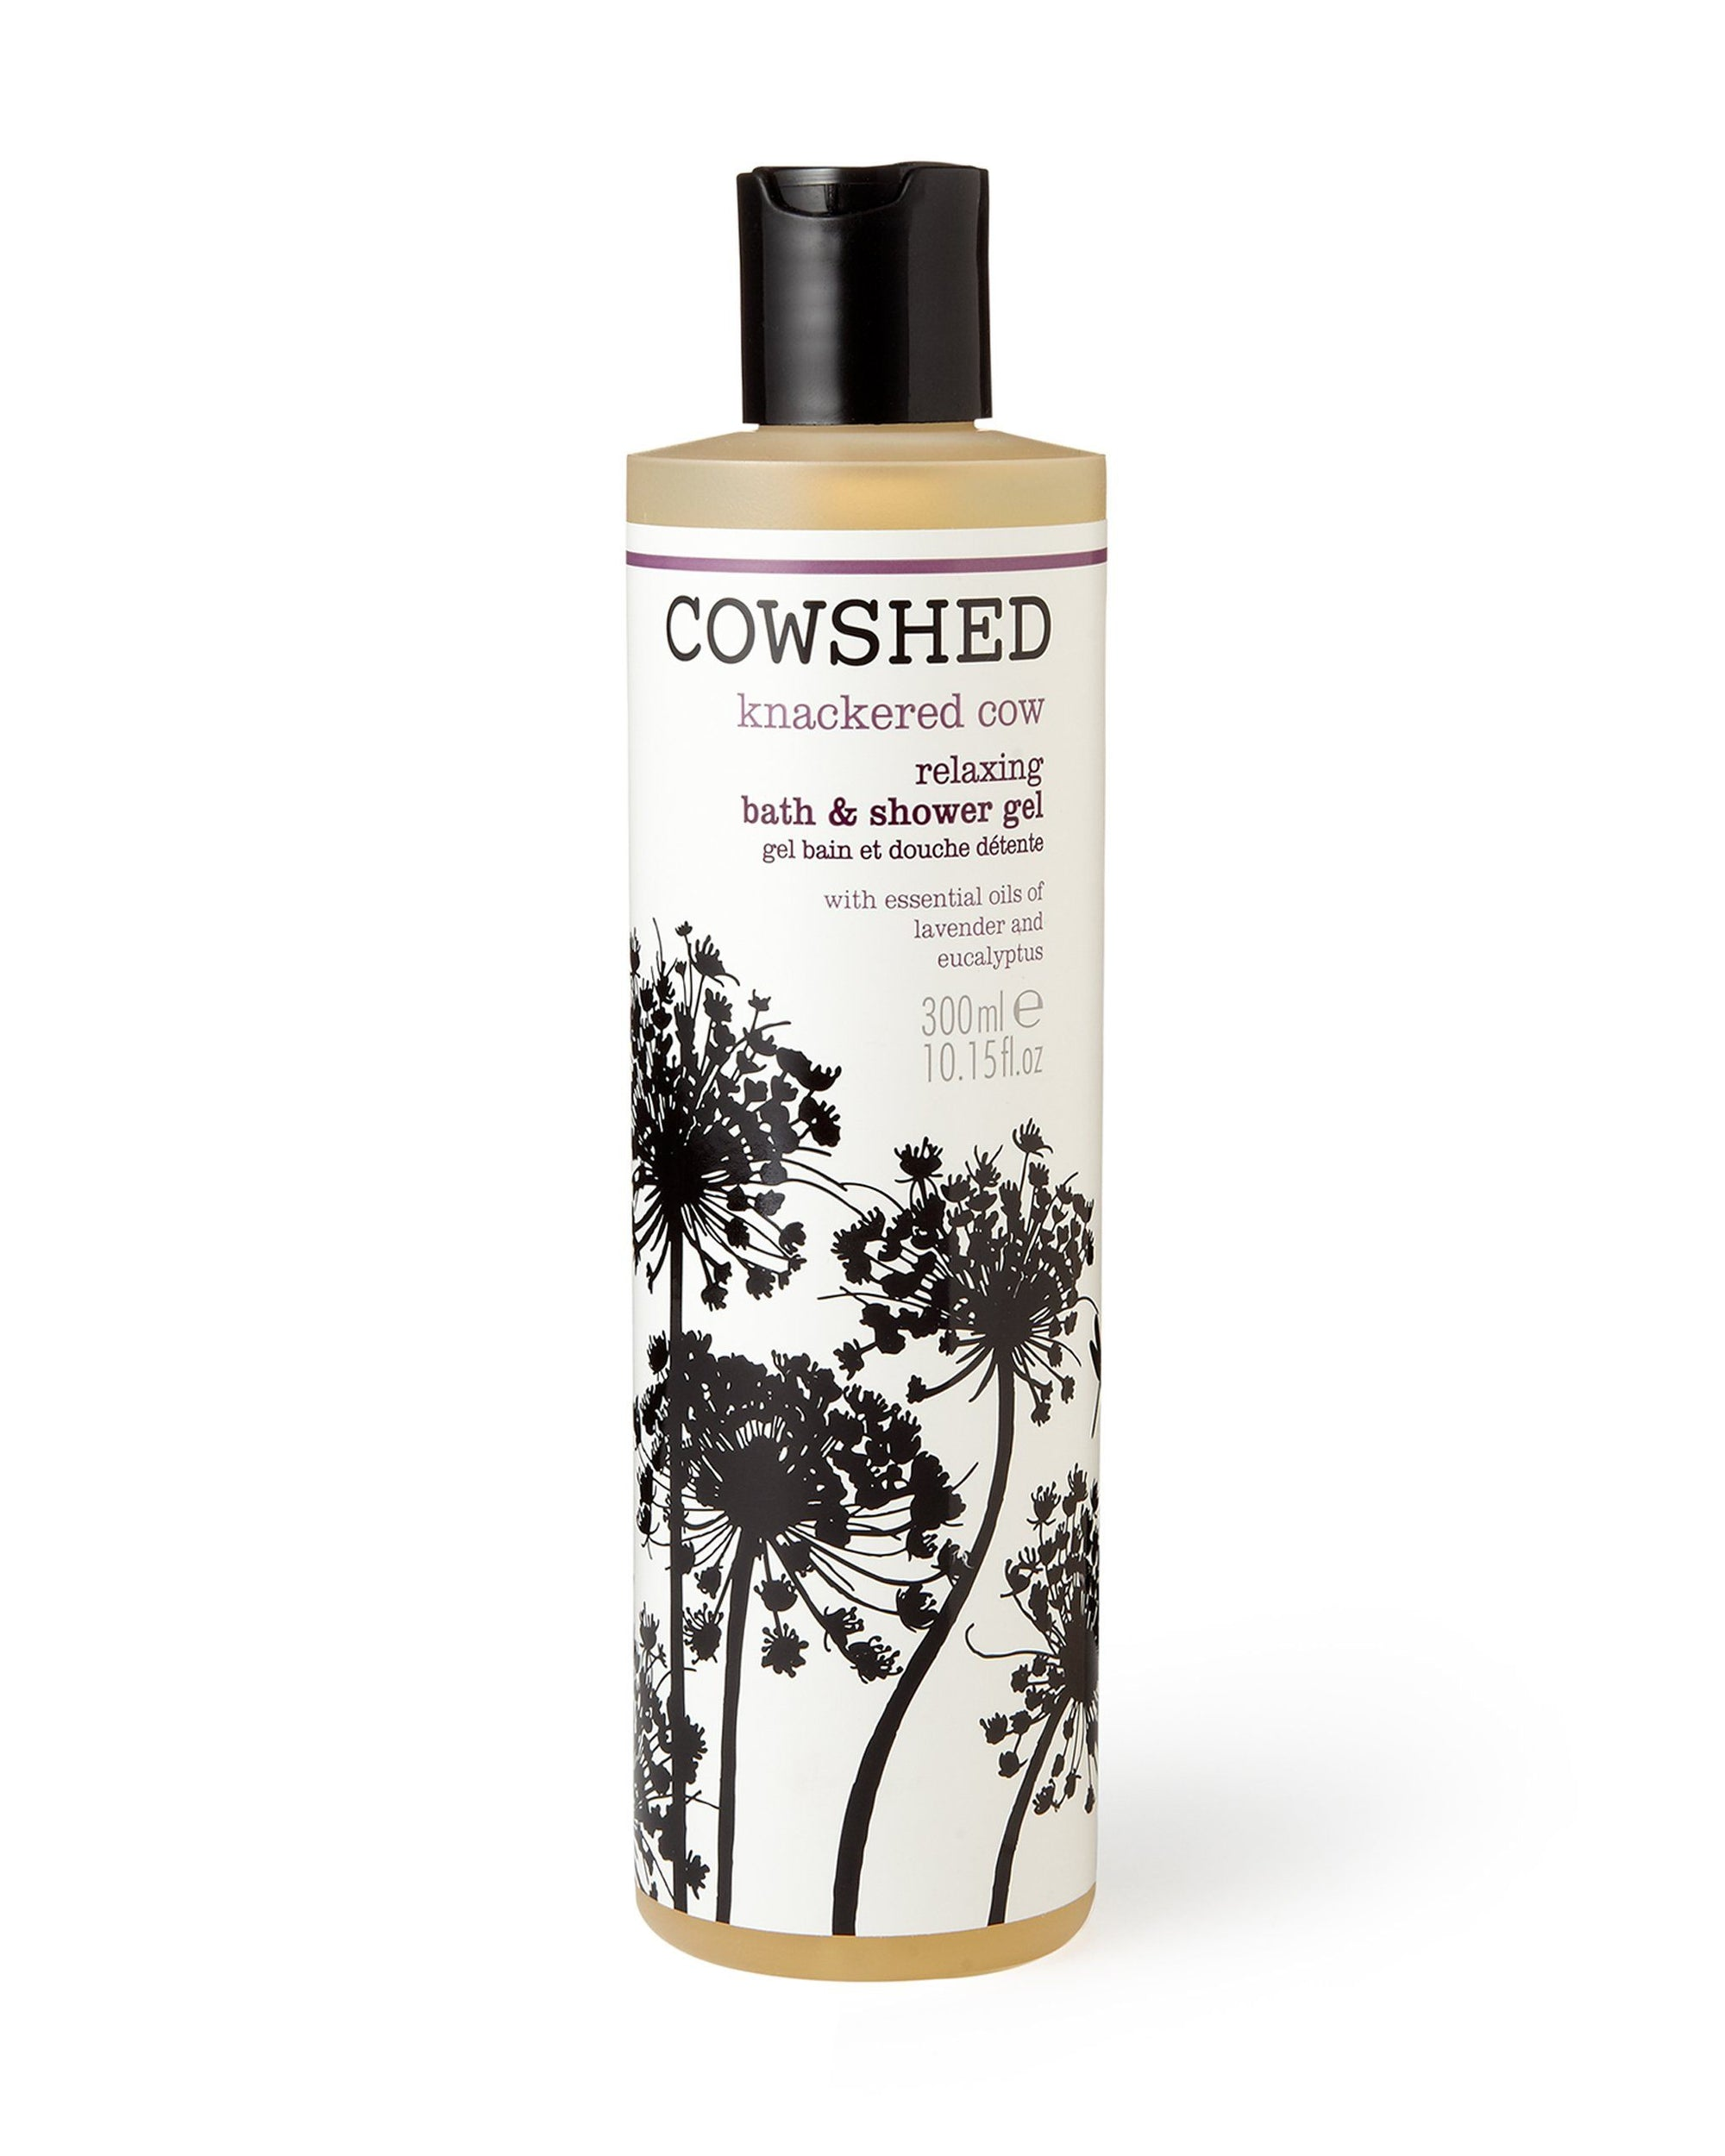 Knackered Cow Relaxing Bath & Shower Gel (300ml) Cowshed - BouChic